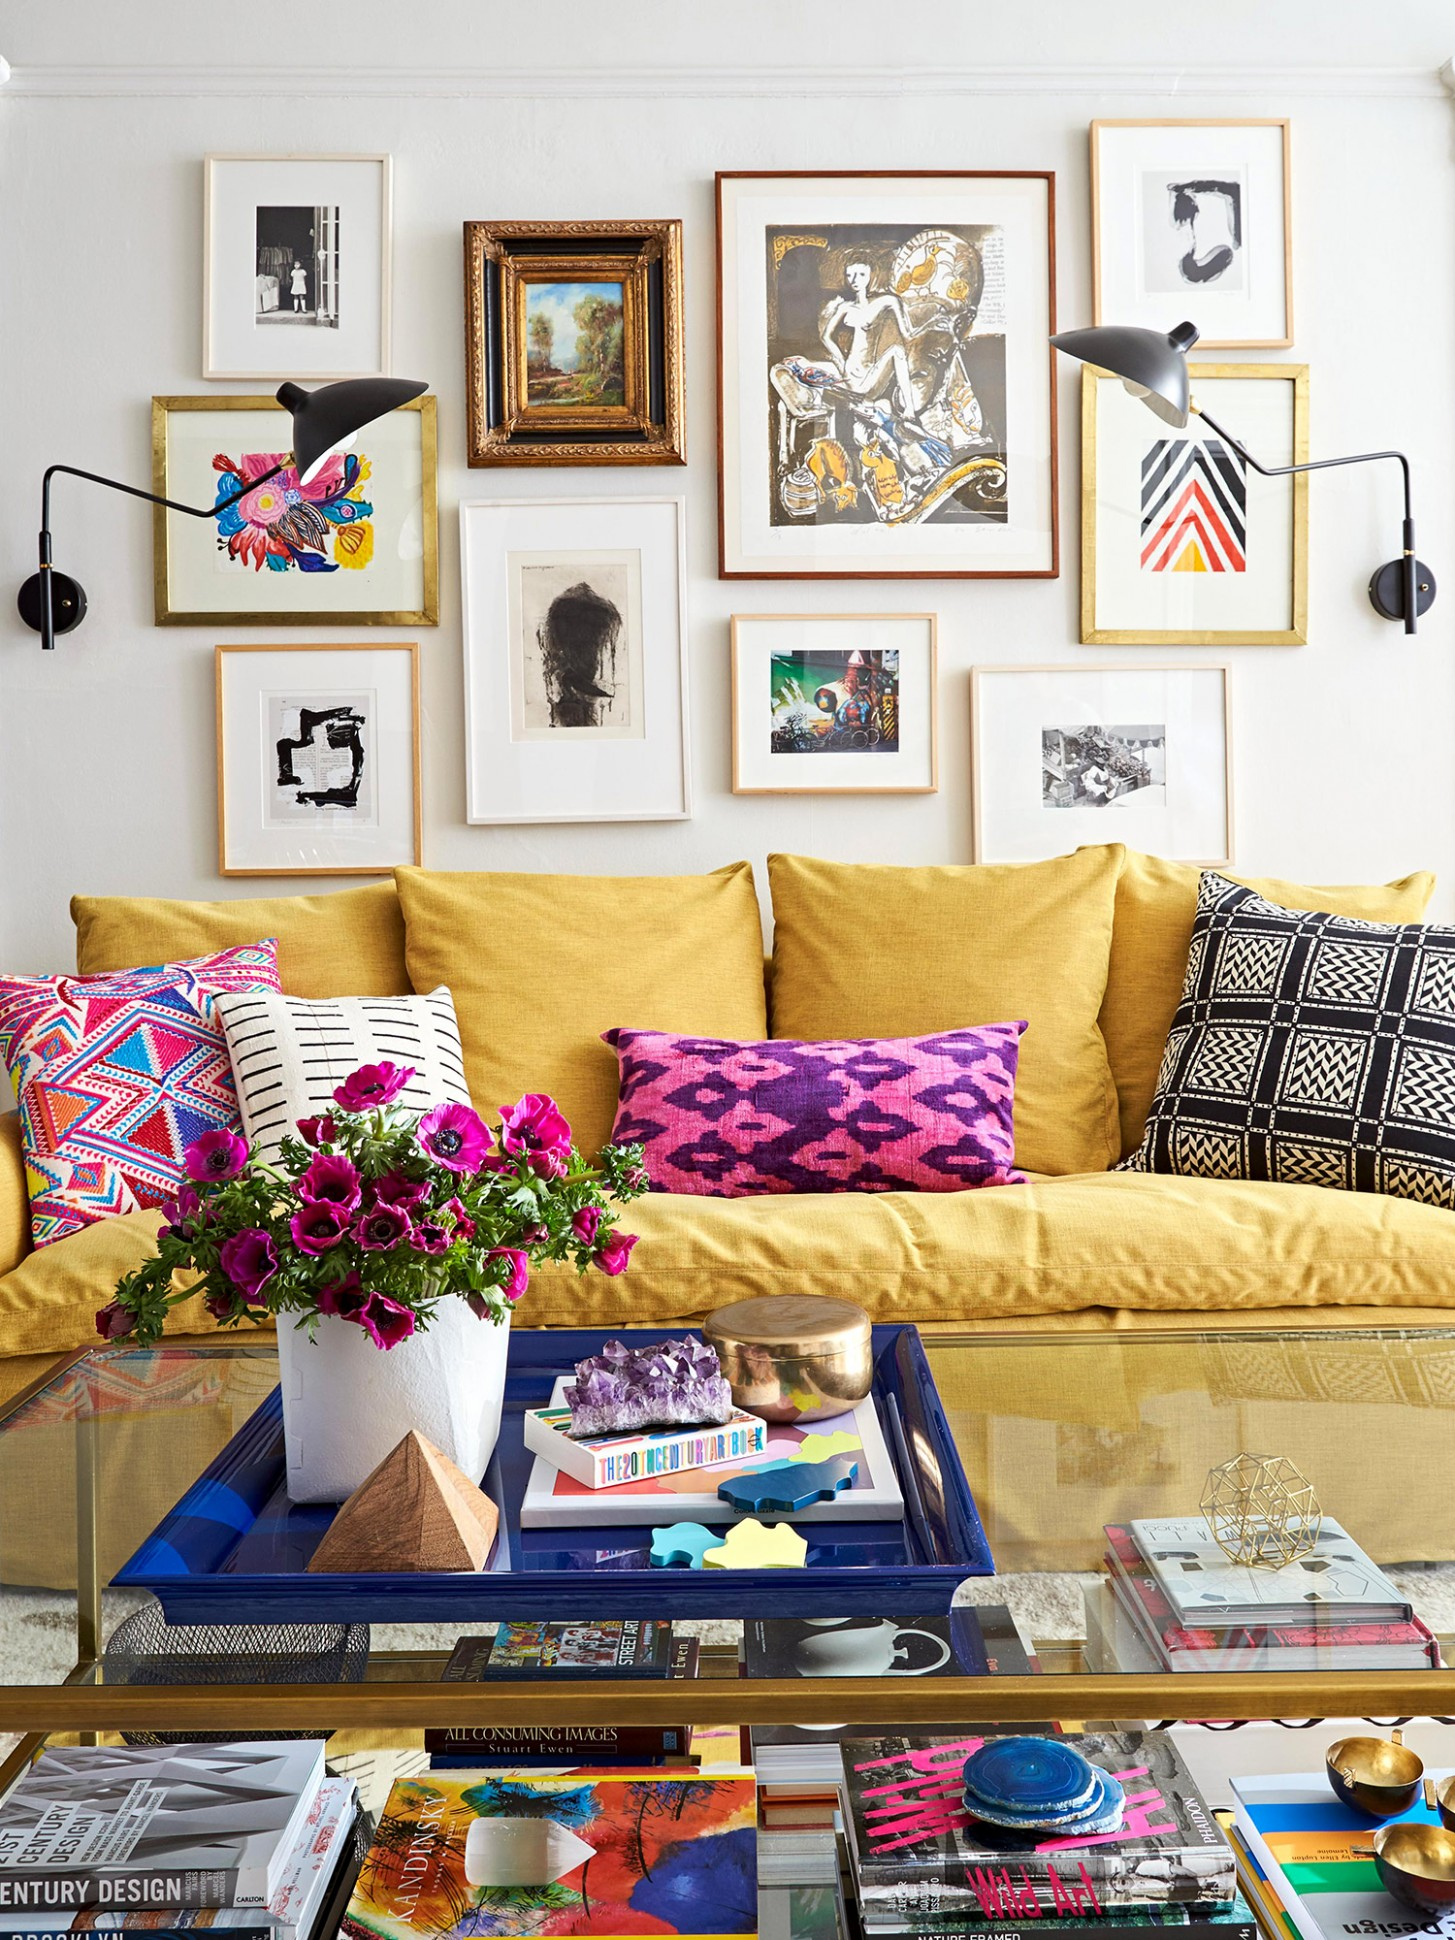 10 Apartment Decorating Ideas to Make Your Rental Feel Like Home  - Apartment Design Guide Part 3